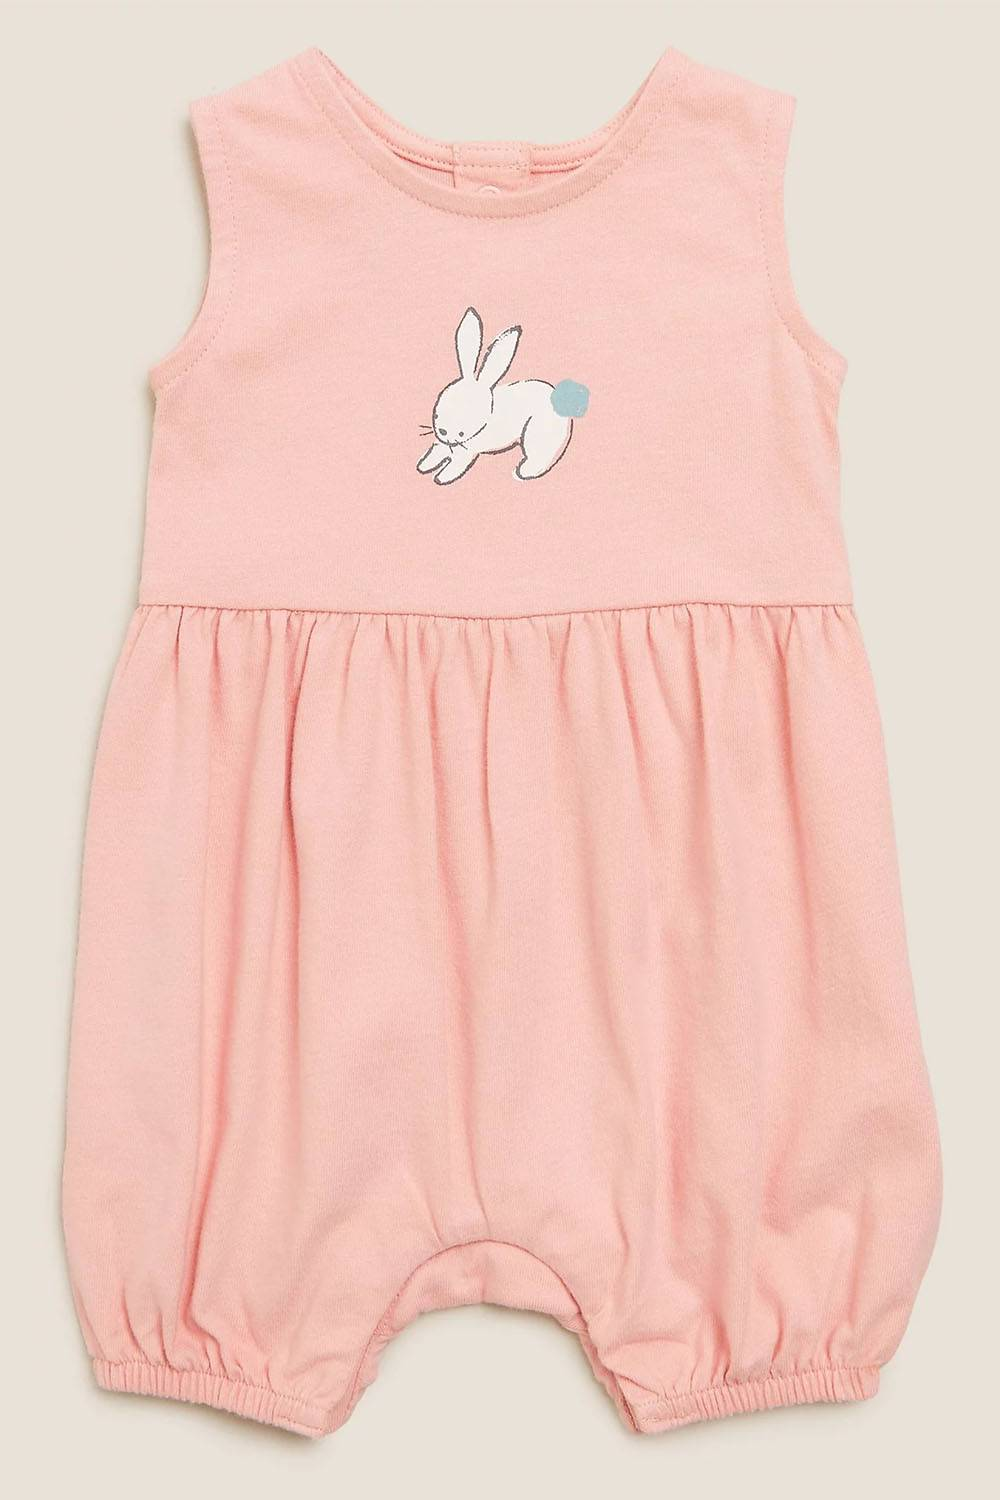 marks spencer cute baby girl easter outfit